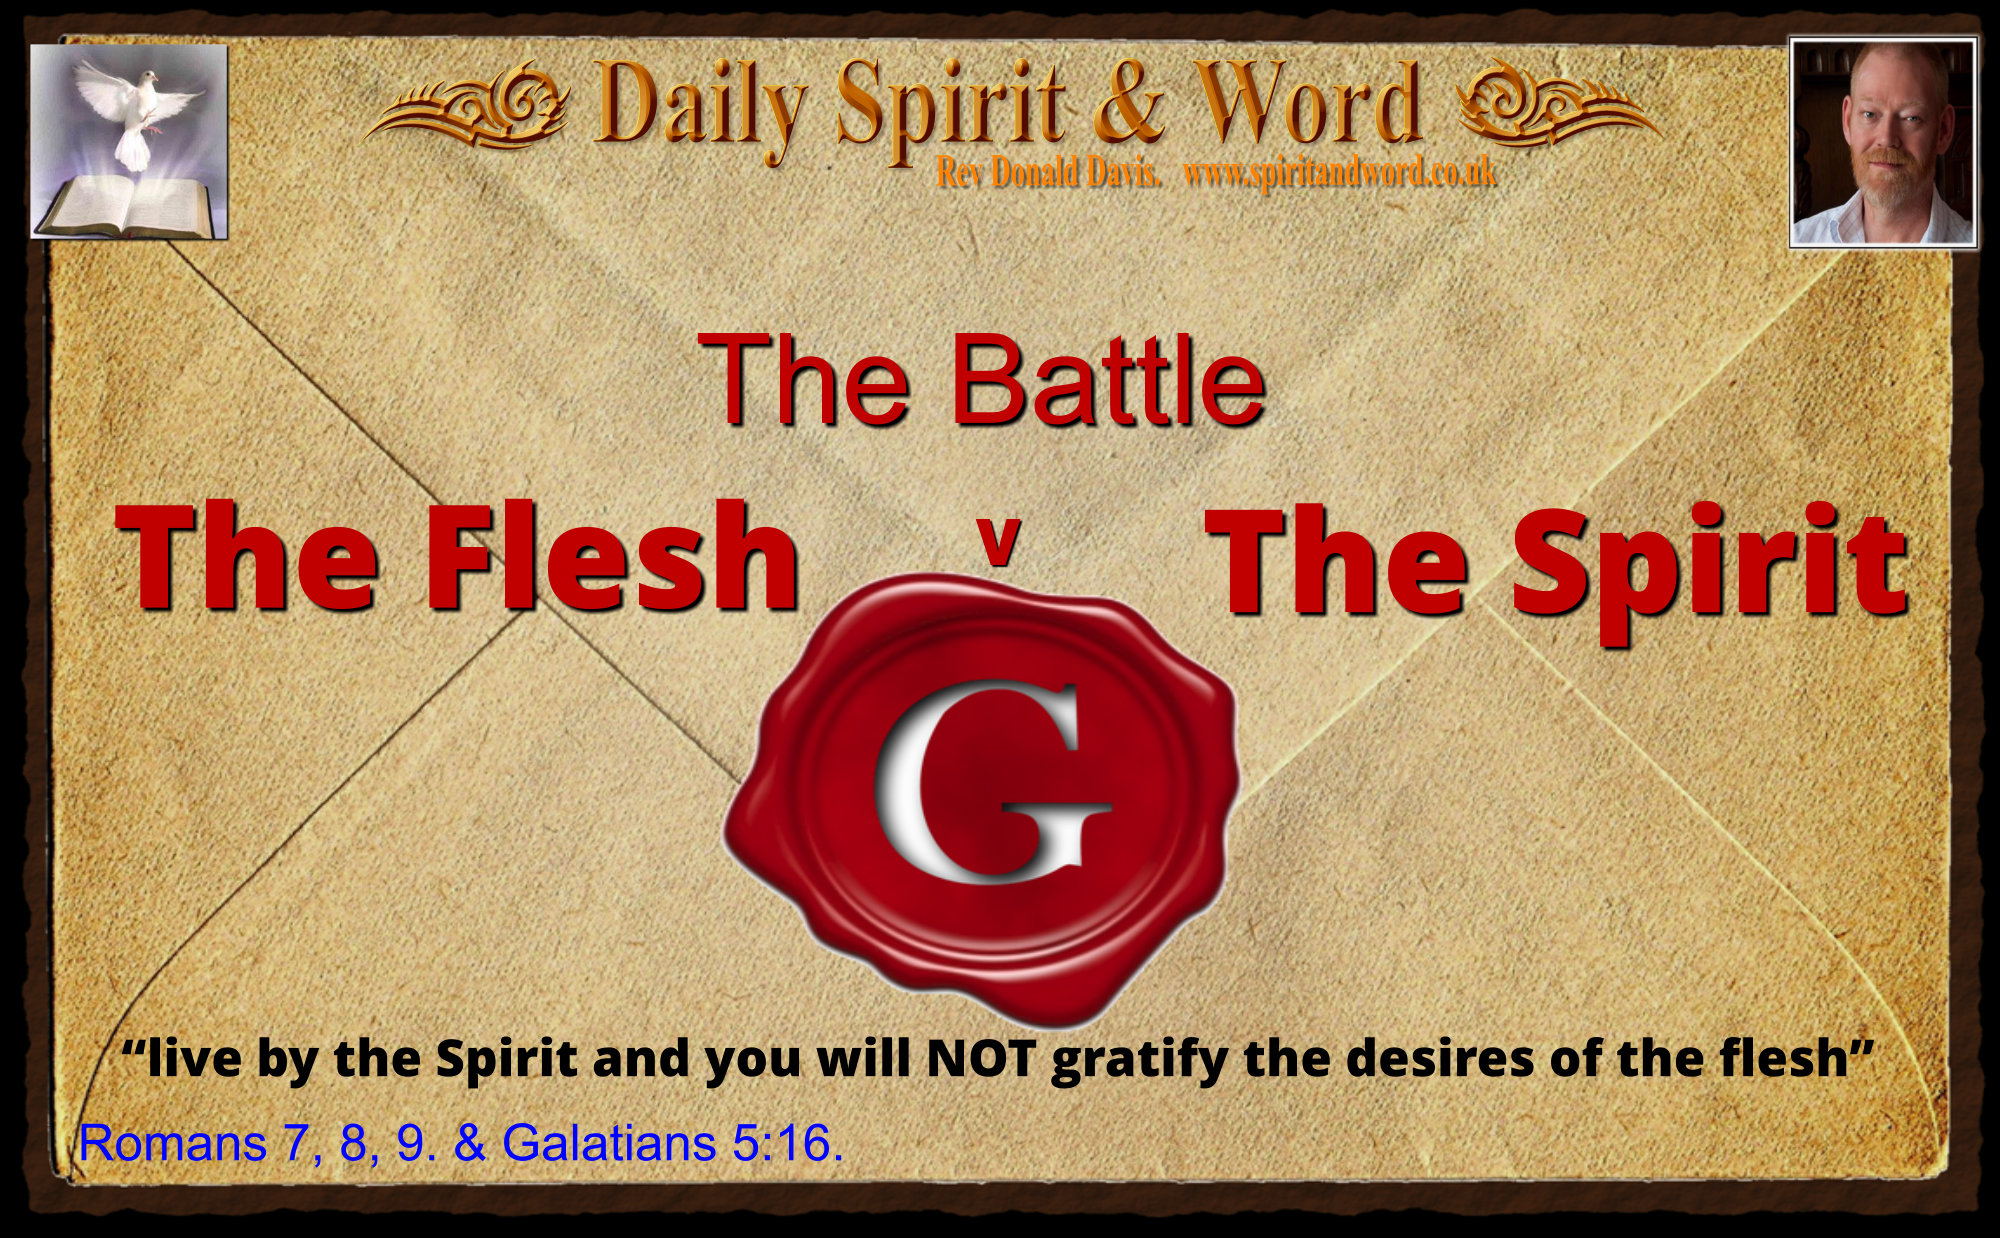 The Battle of the Spirit and the Flesh